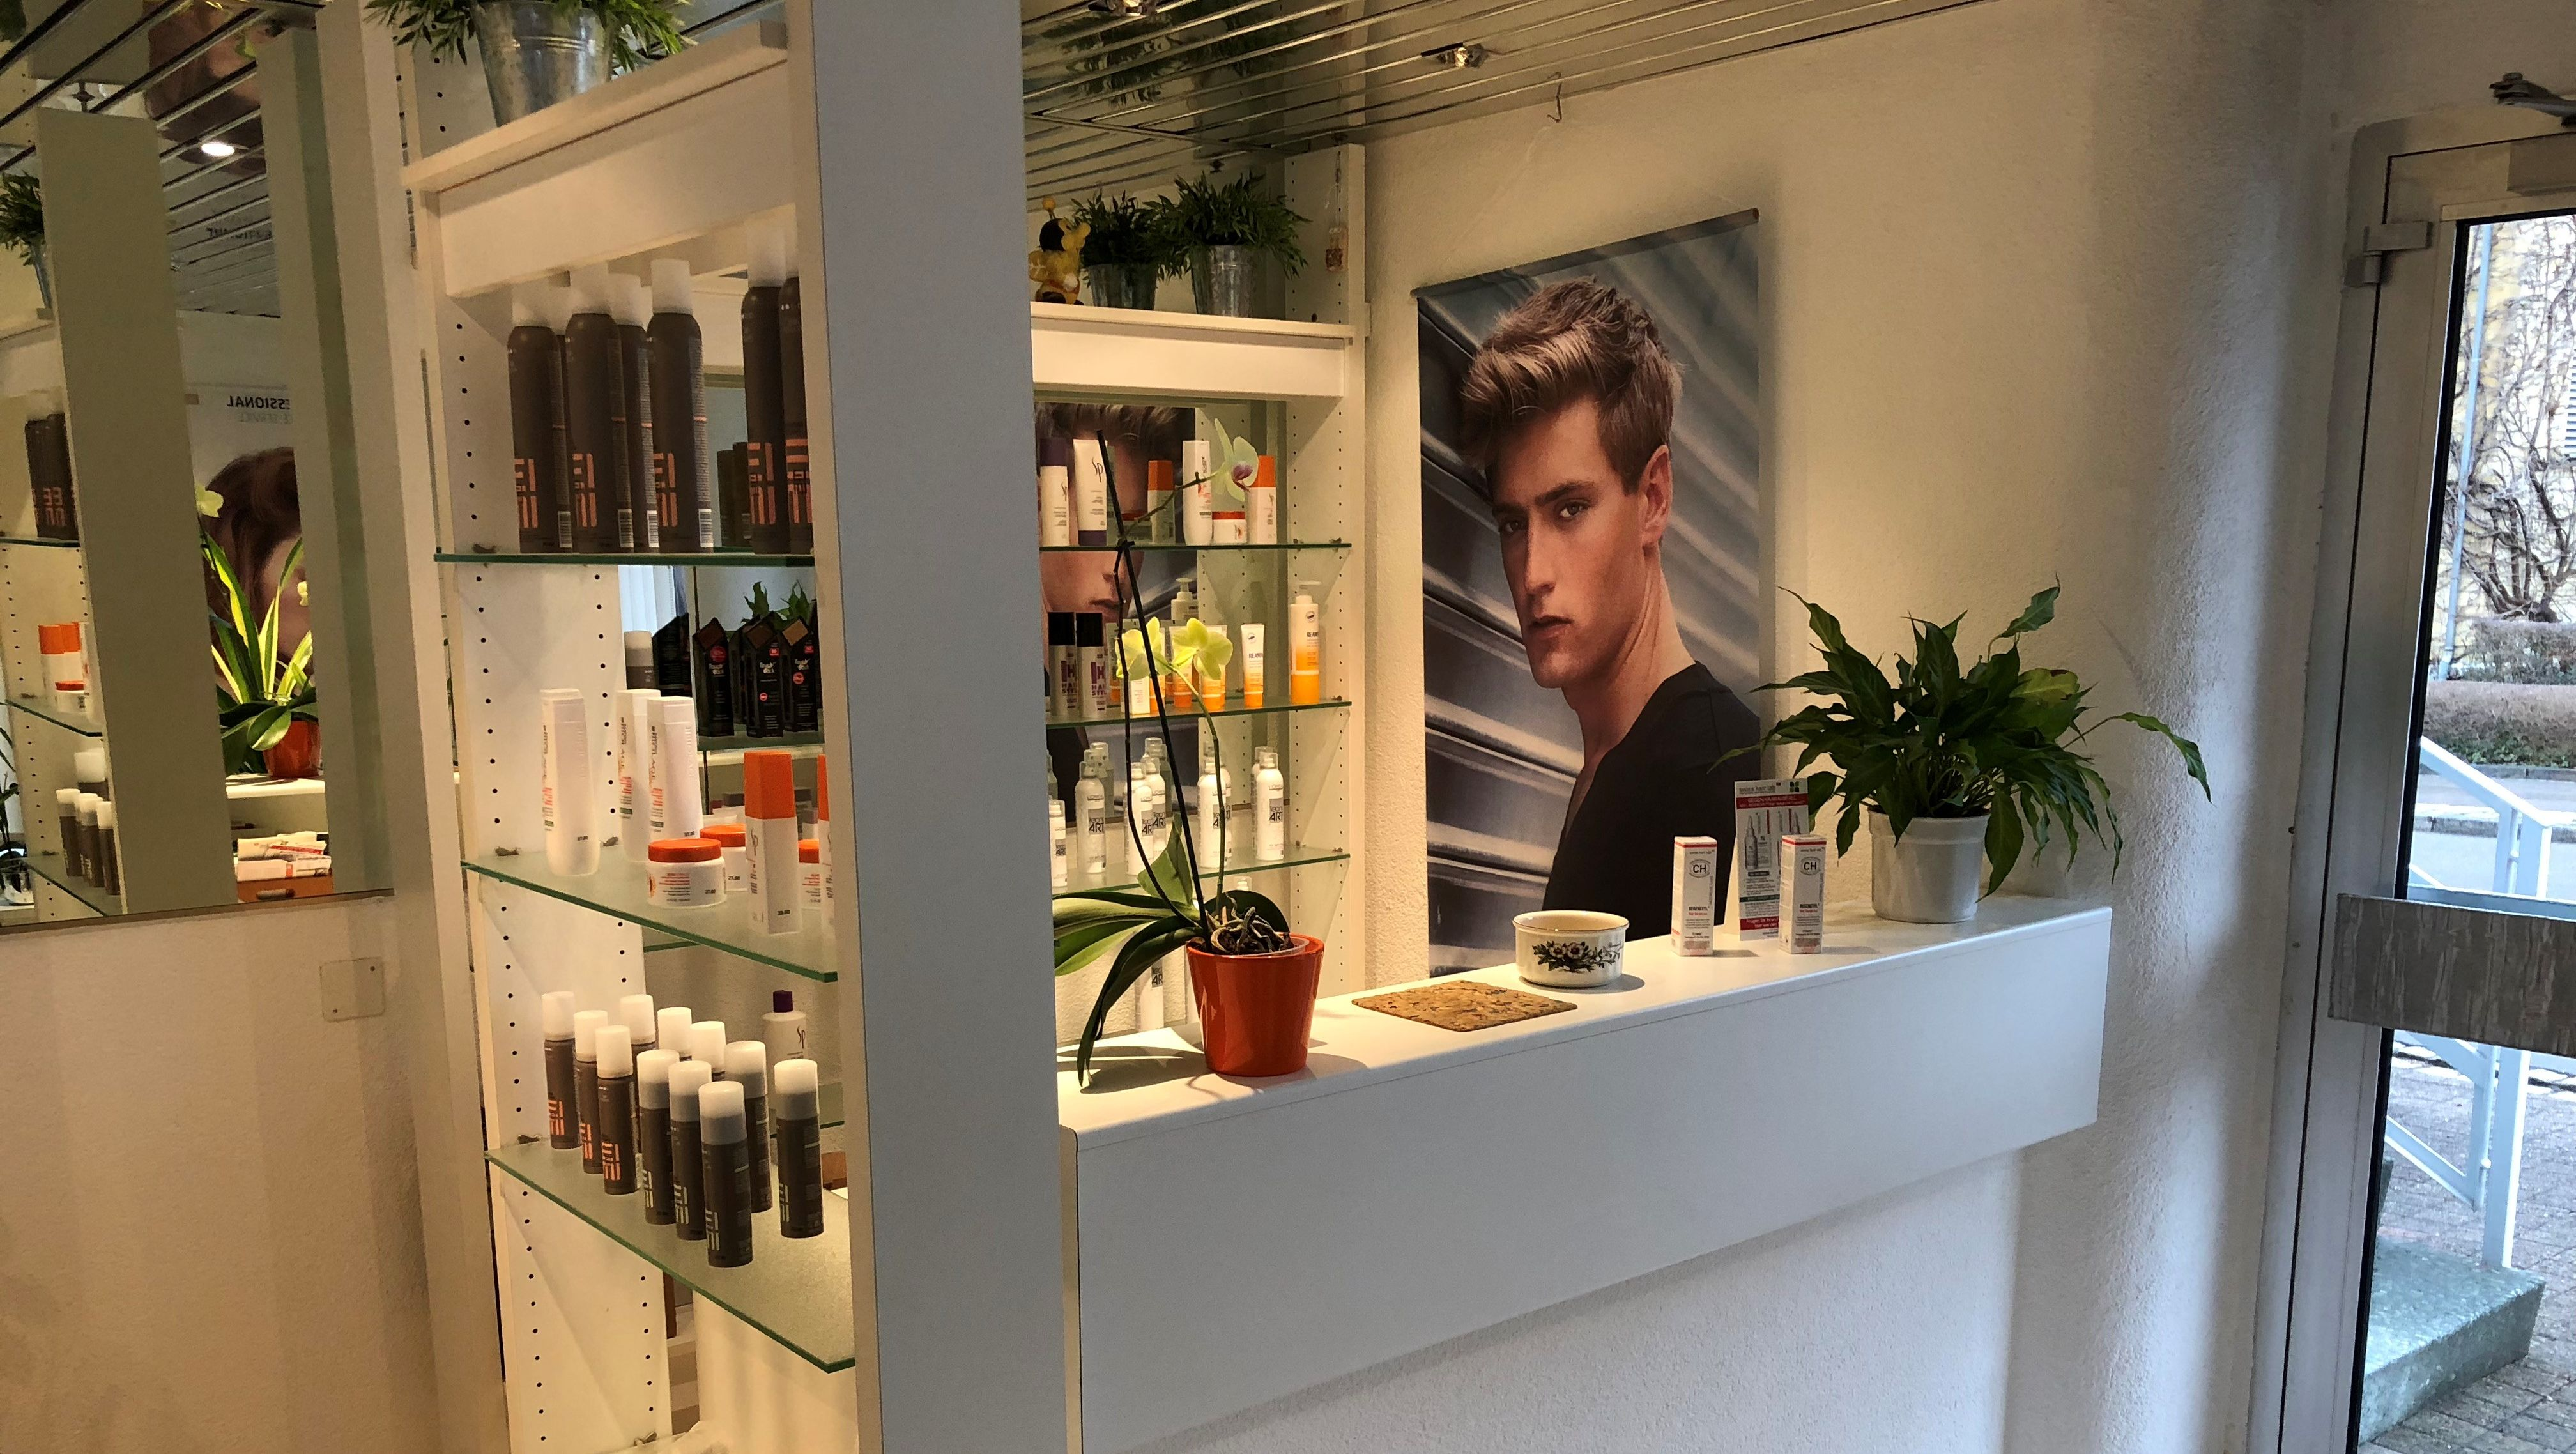 Empfang Coiffeur - Wash and Style